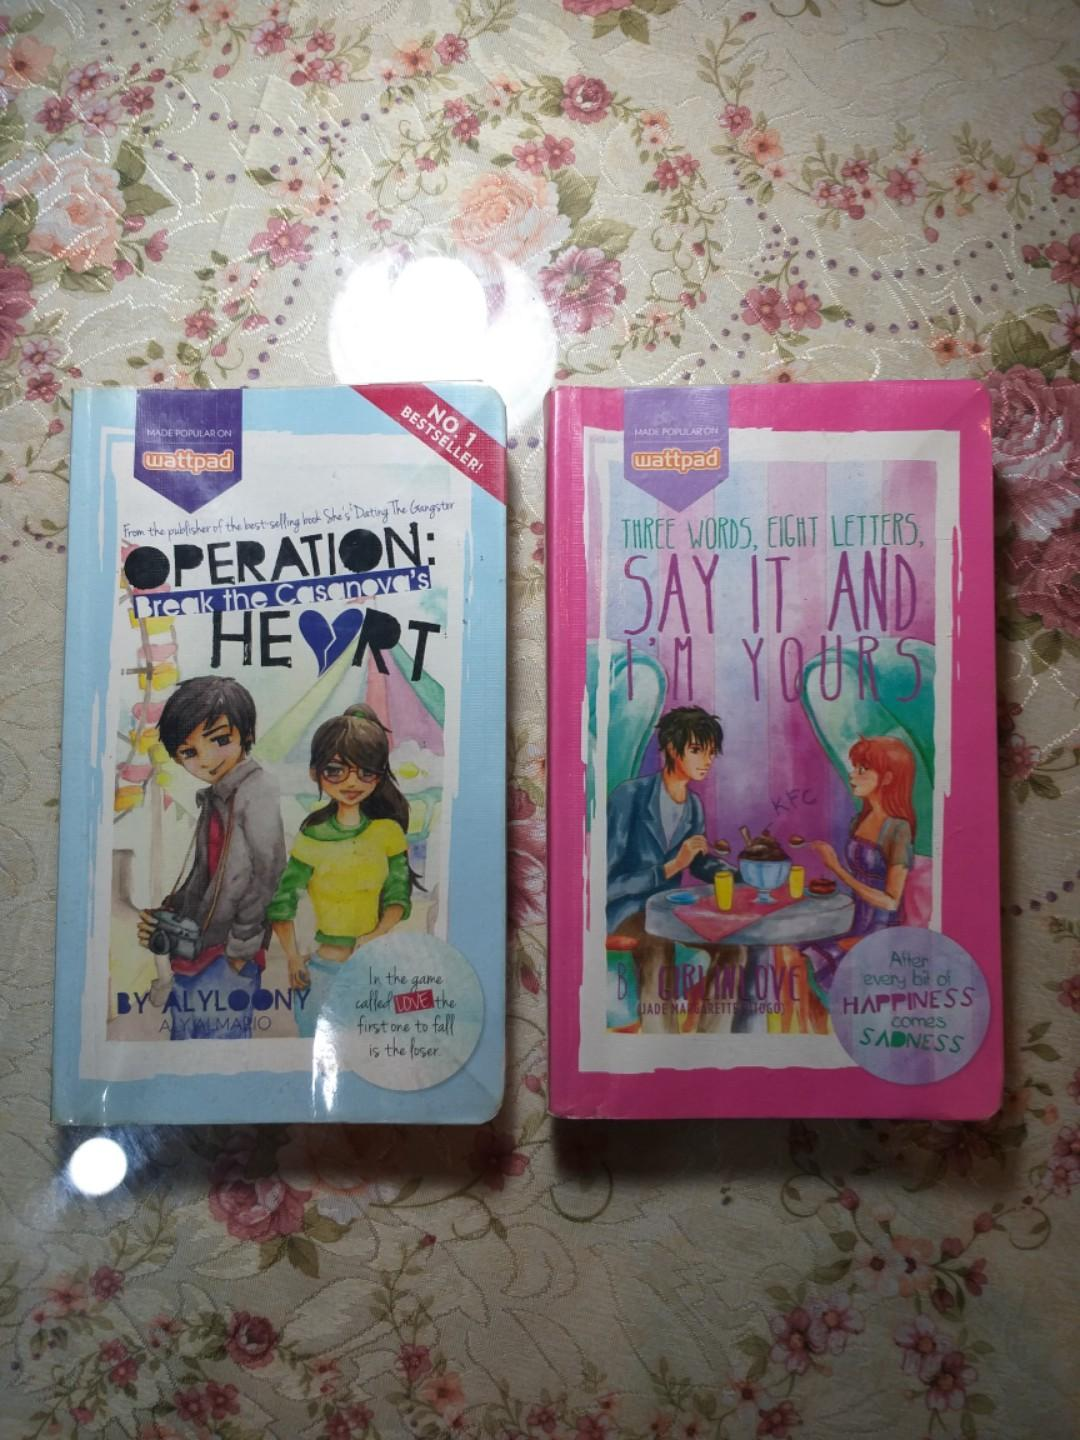 Book bundles: Operation: Break the Casanova's Heart & Three Words, 8 Letters, Say It and I'm Yours